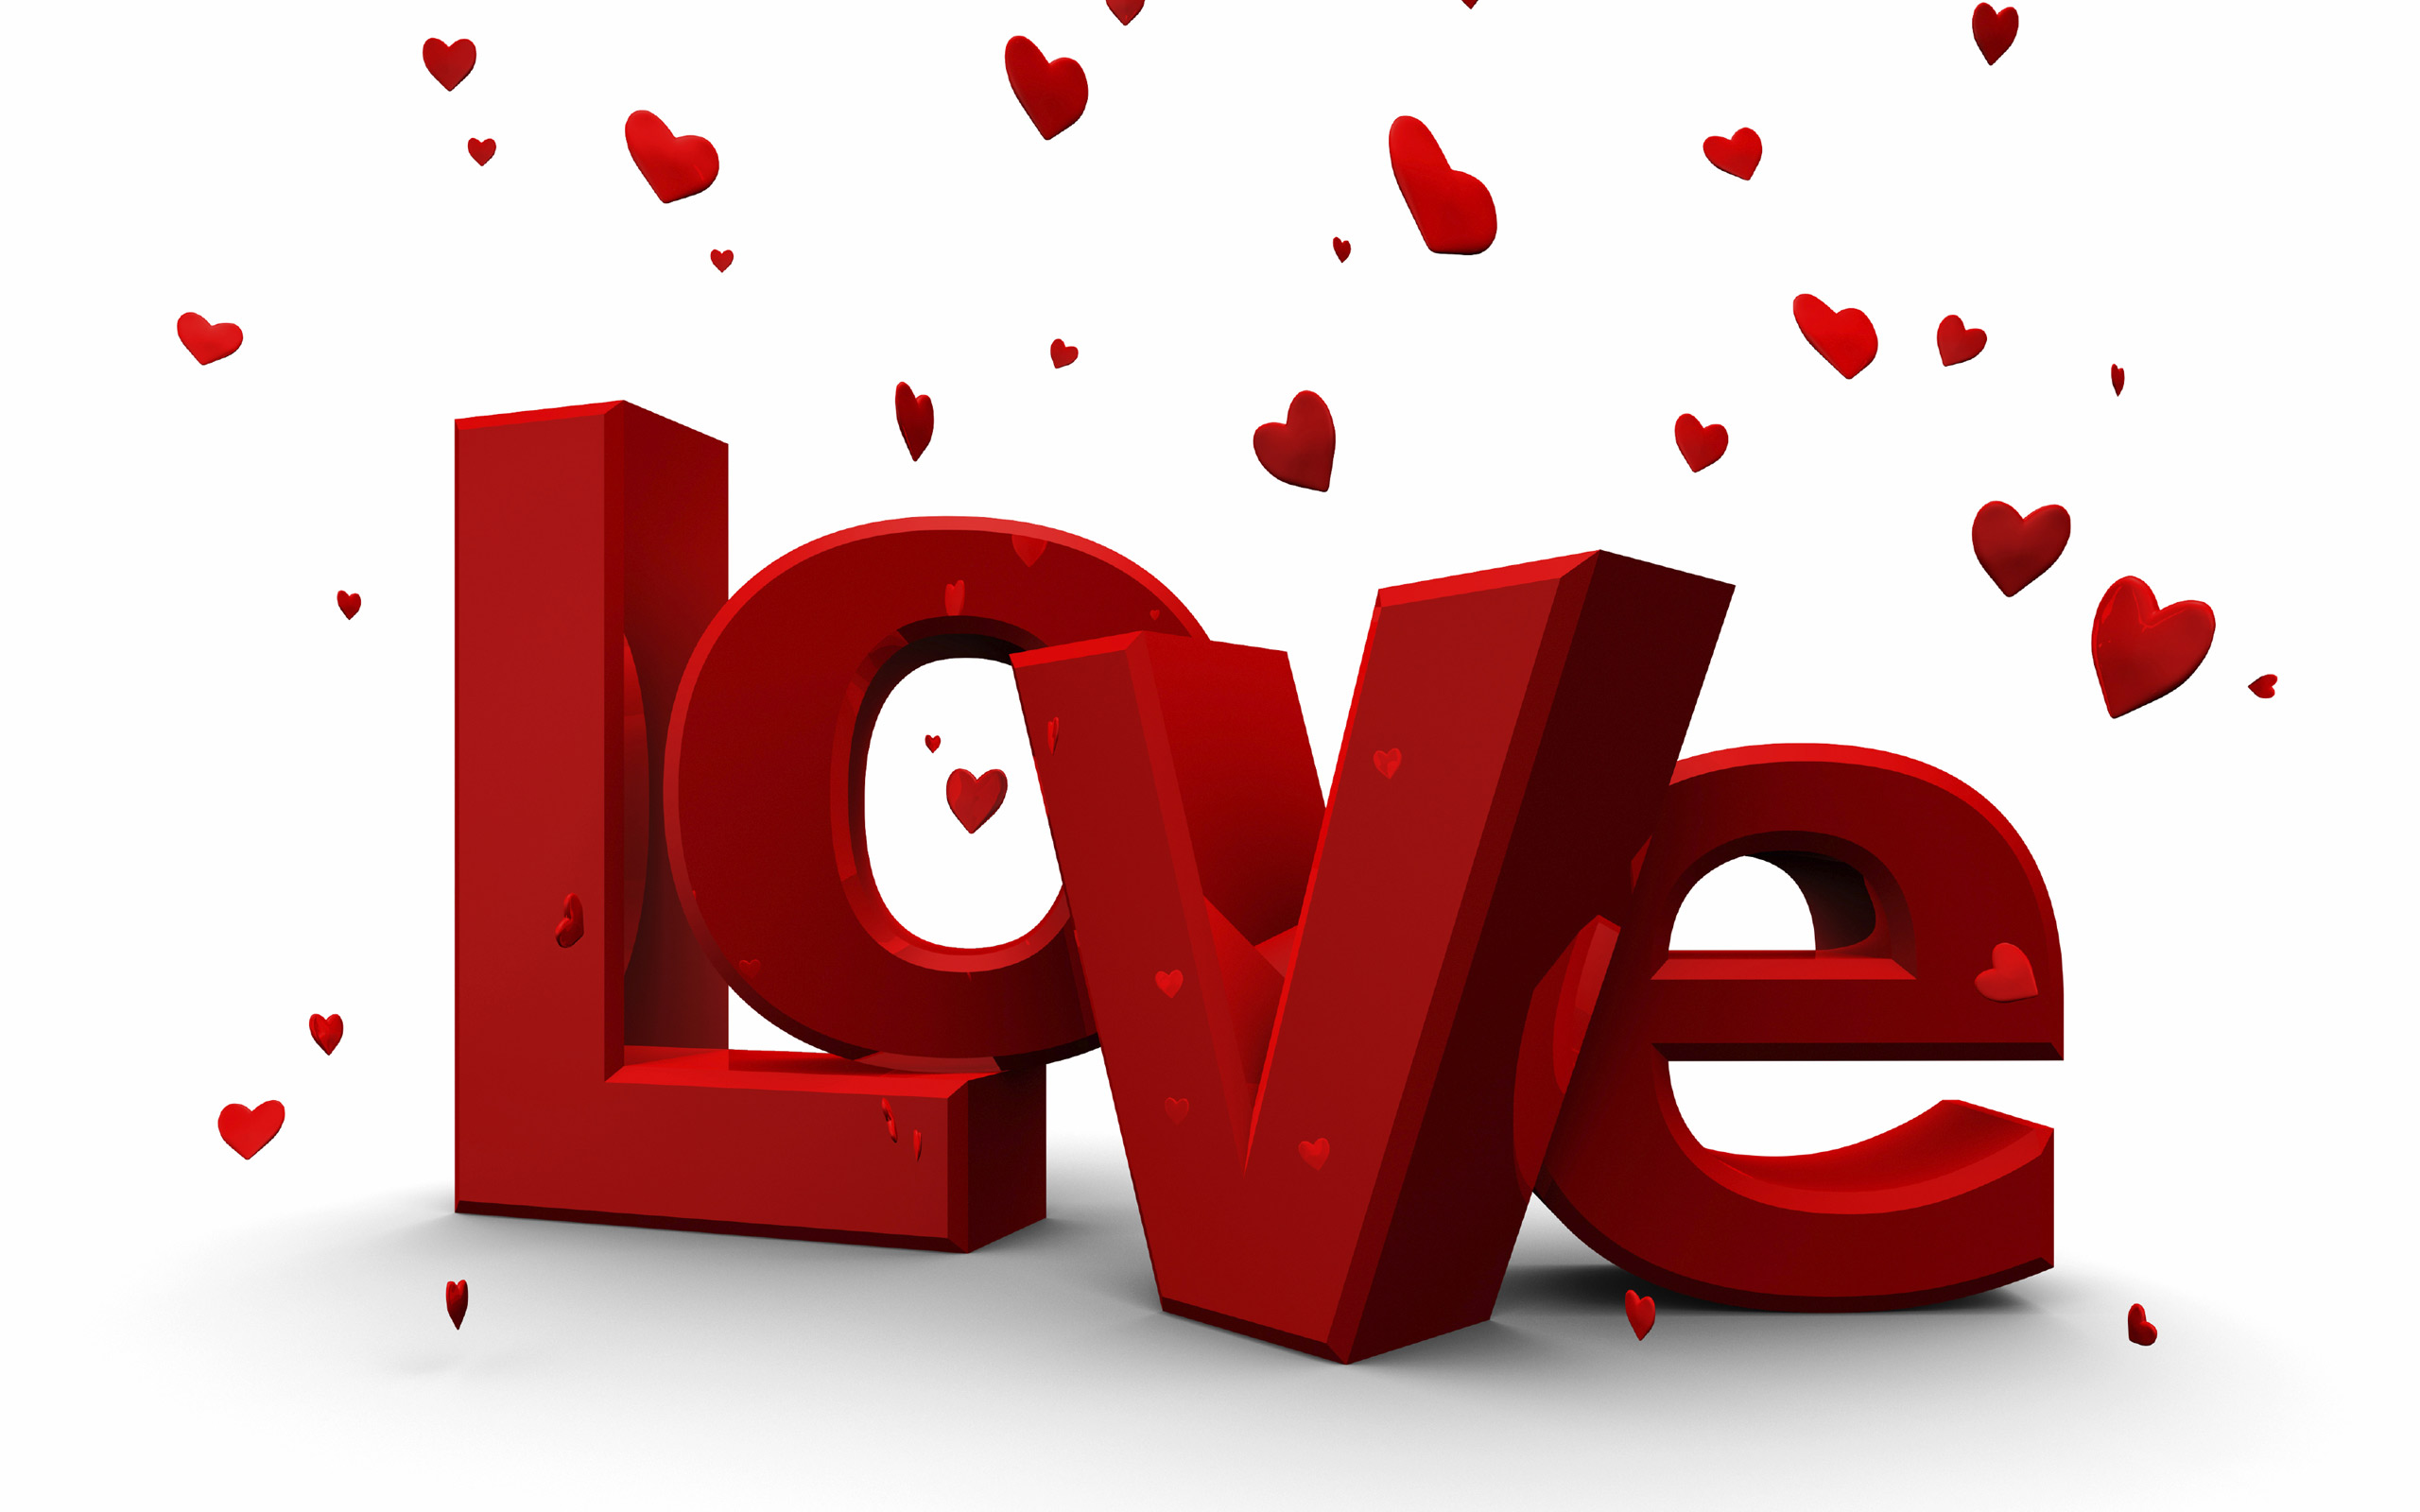 valentine songbest valentine greetingtoday valentineboy wallpapers 2560x1600